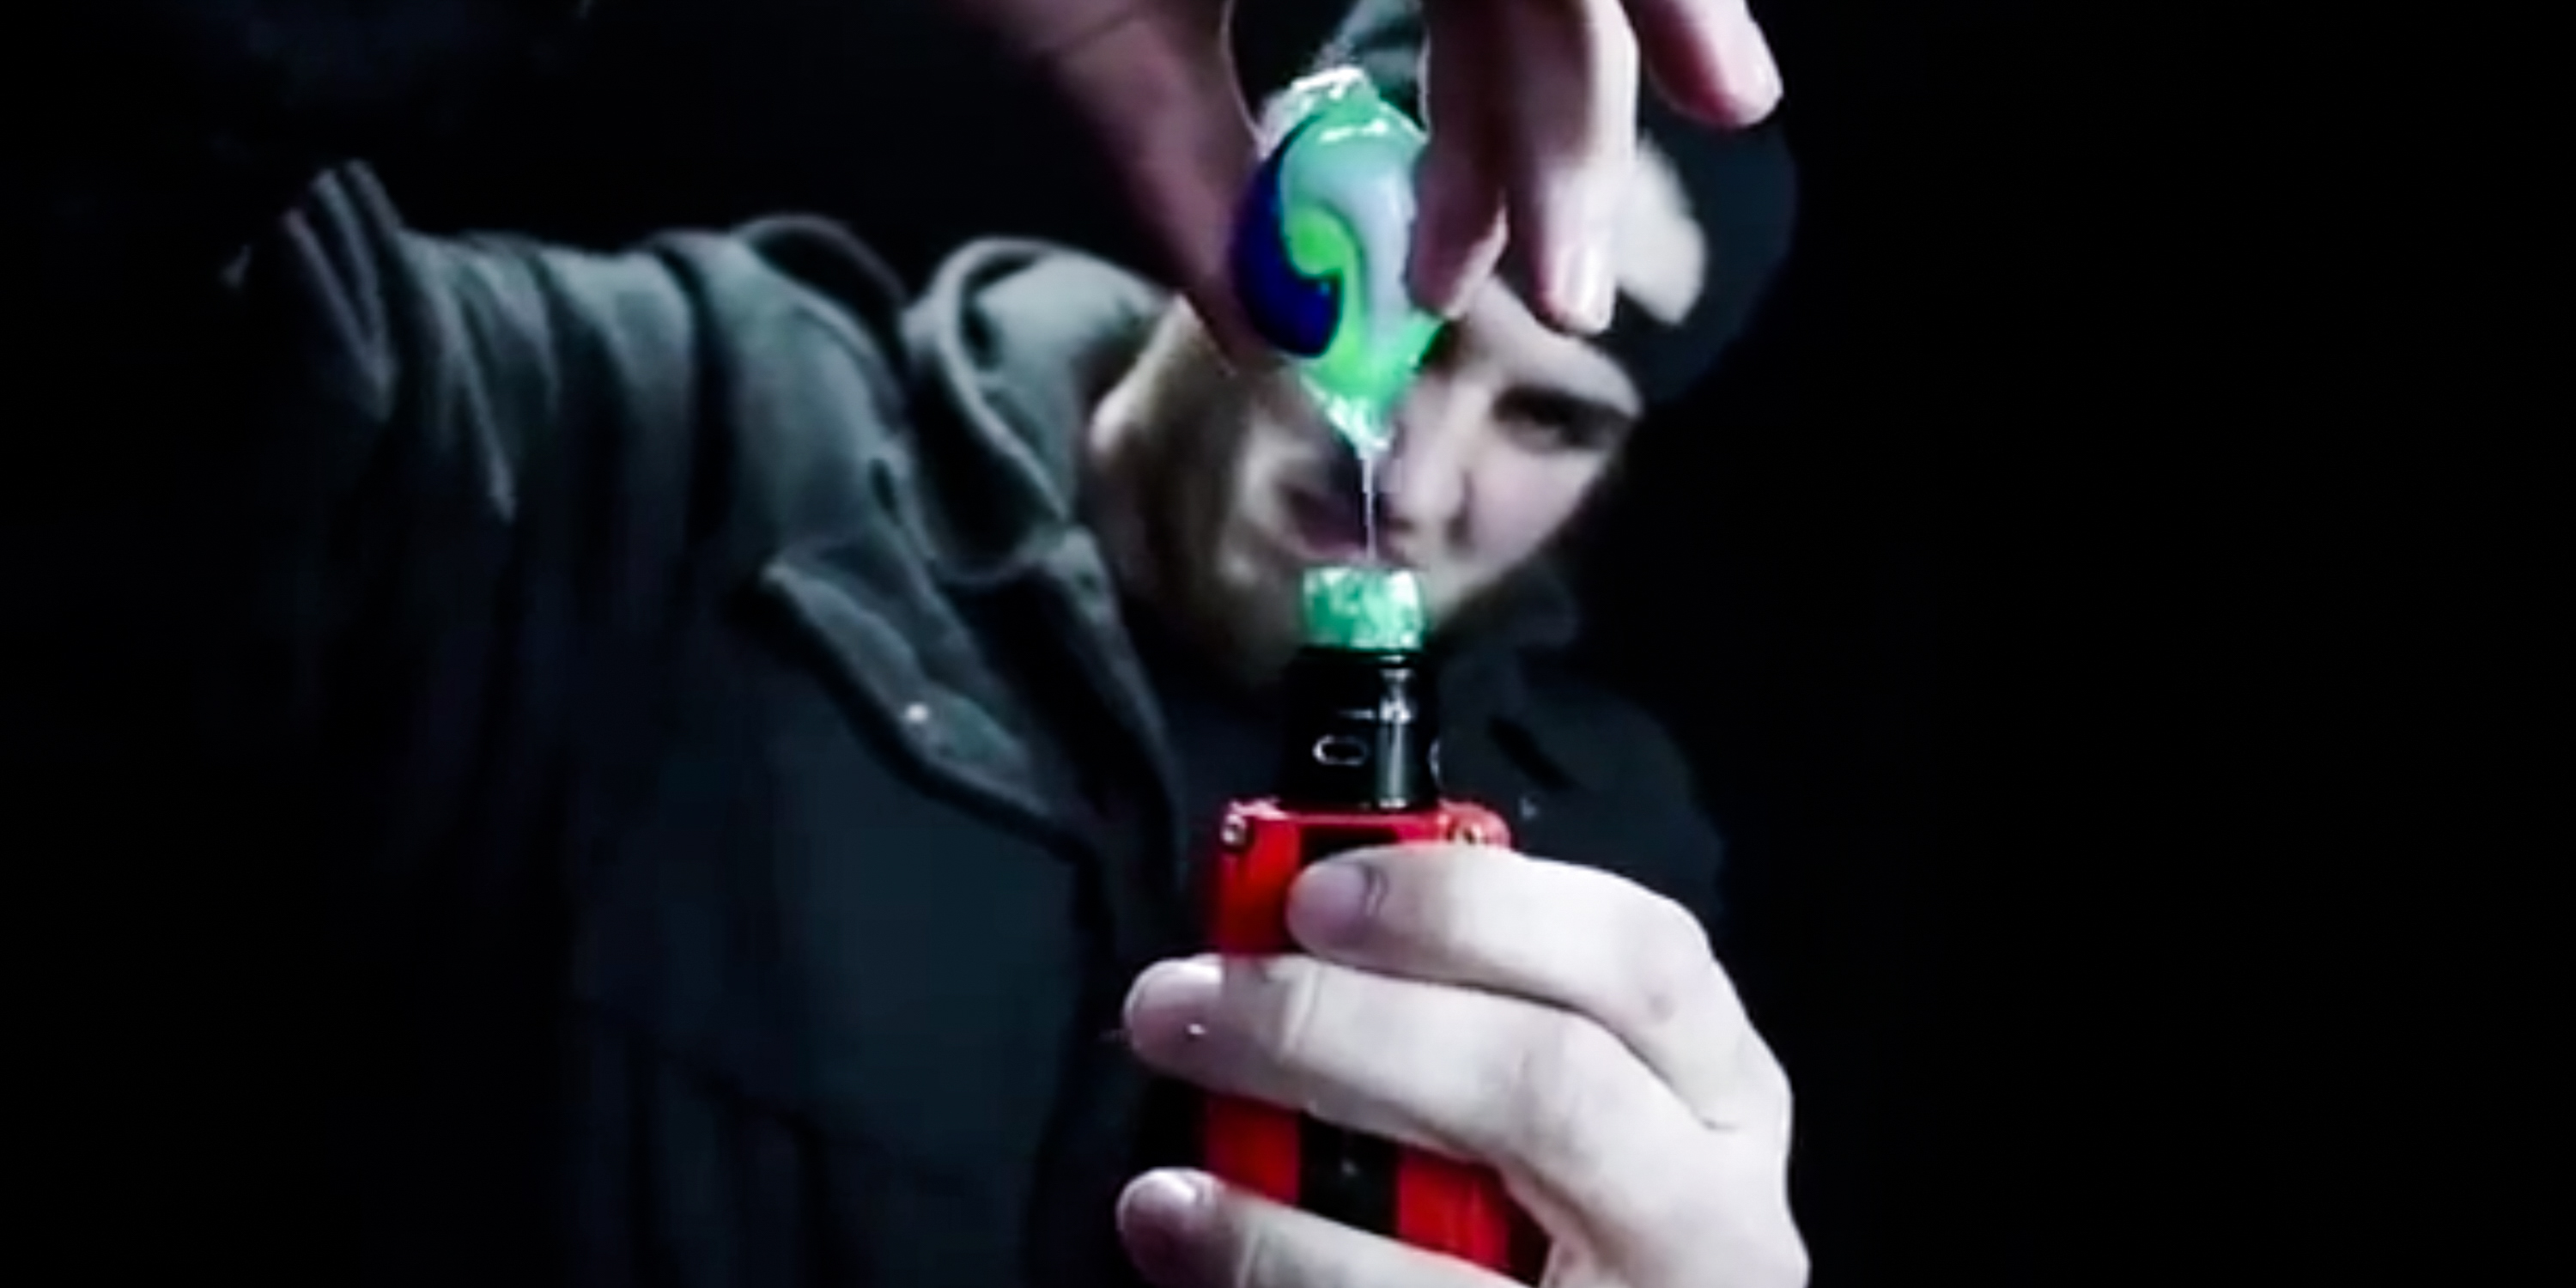 The Tide Pod Vaping Trend Continues Despite Warnings From